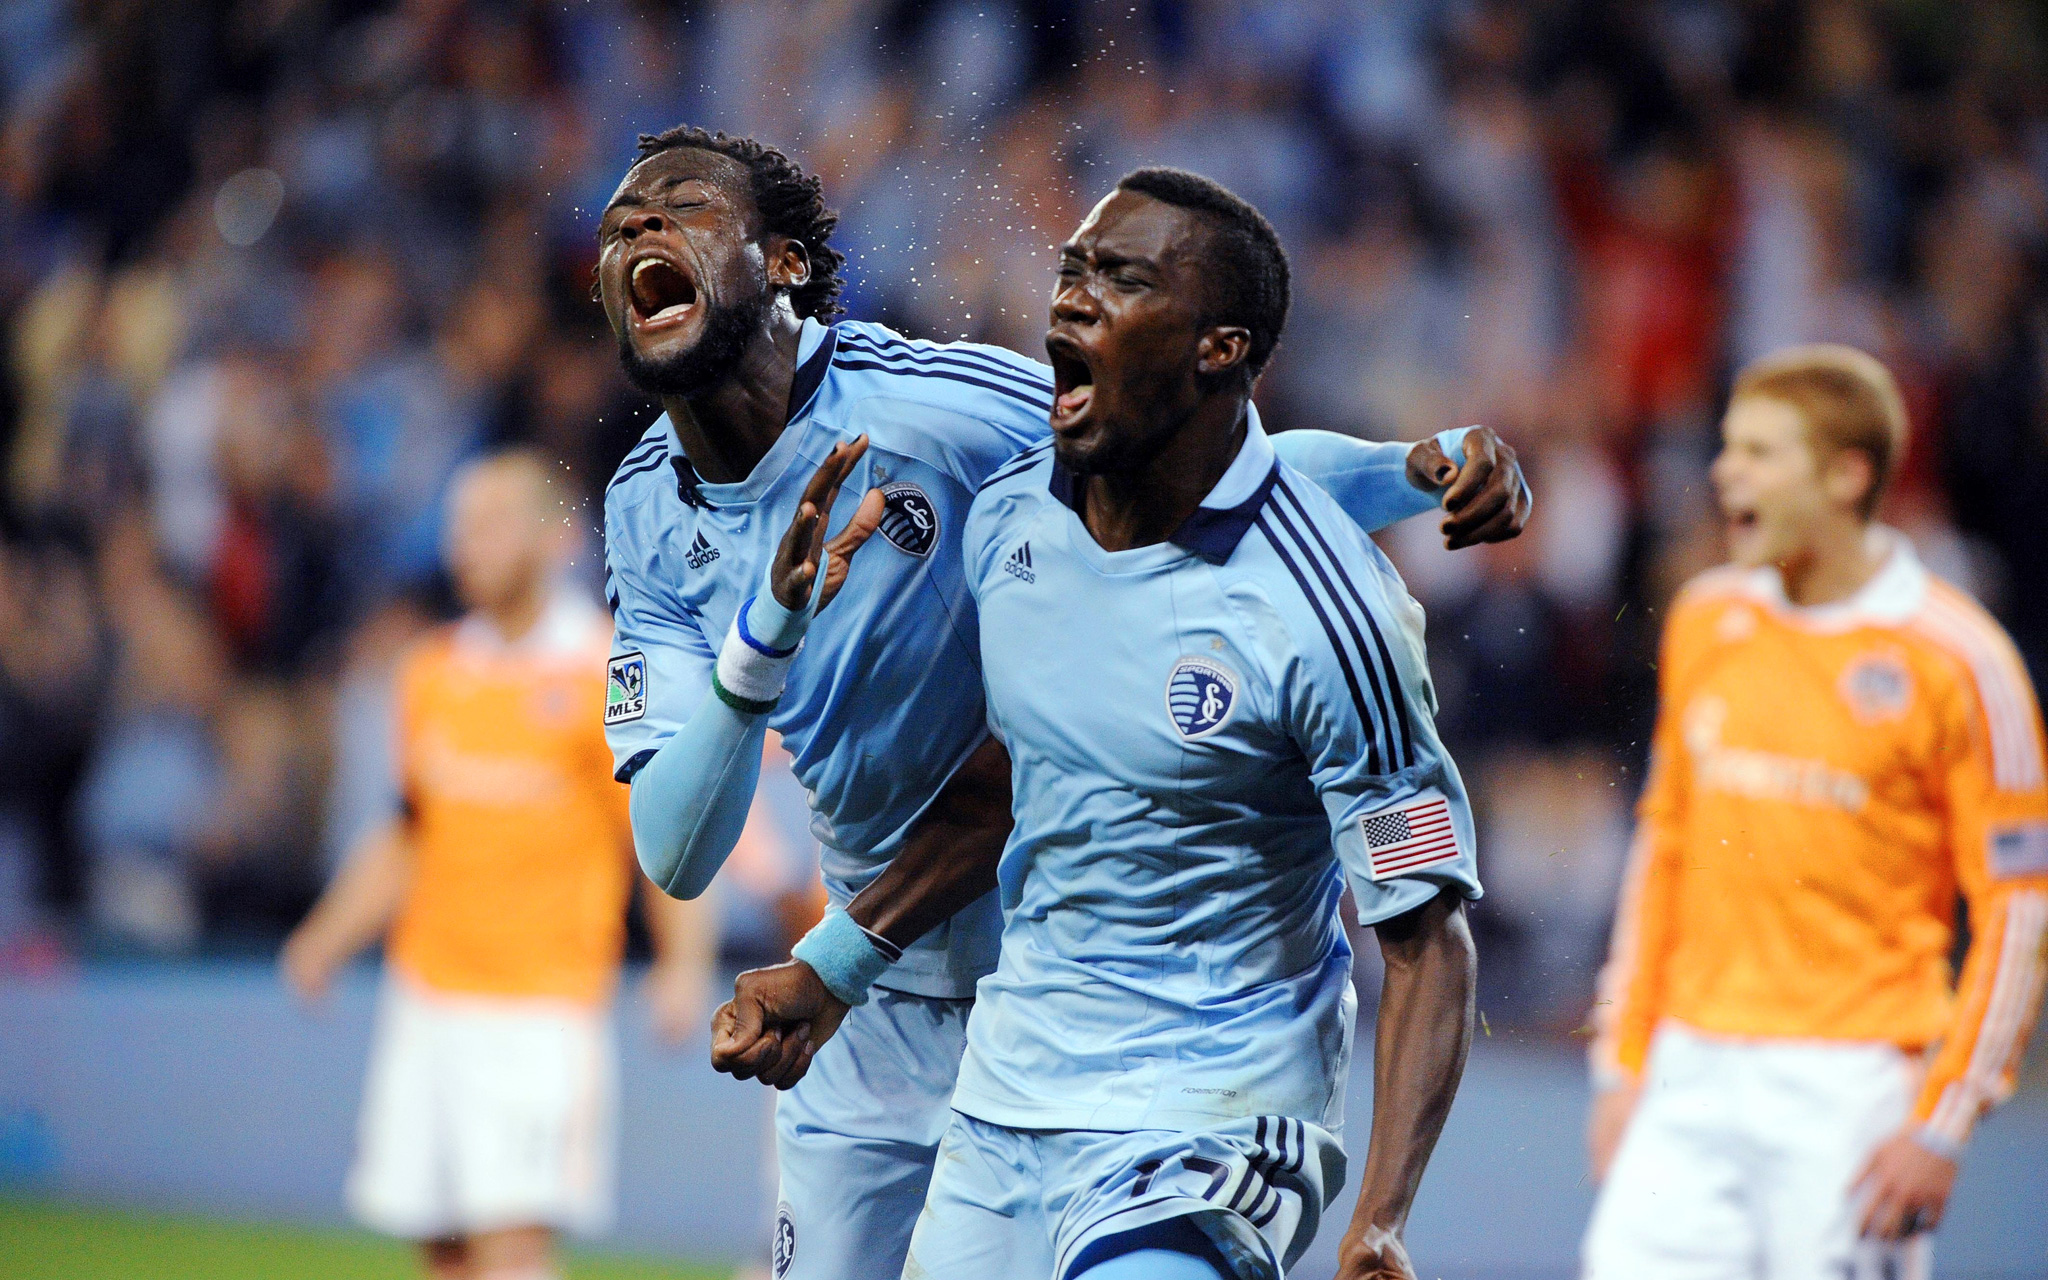 CJ Sapong and Kei Kamara